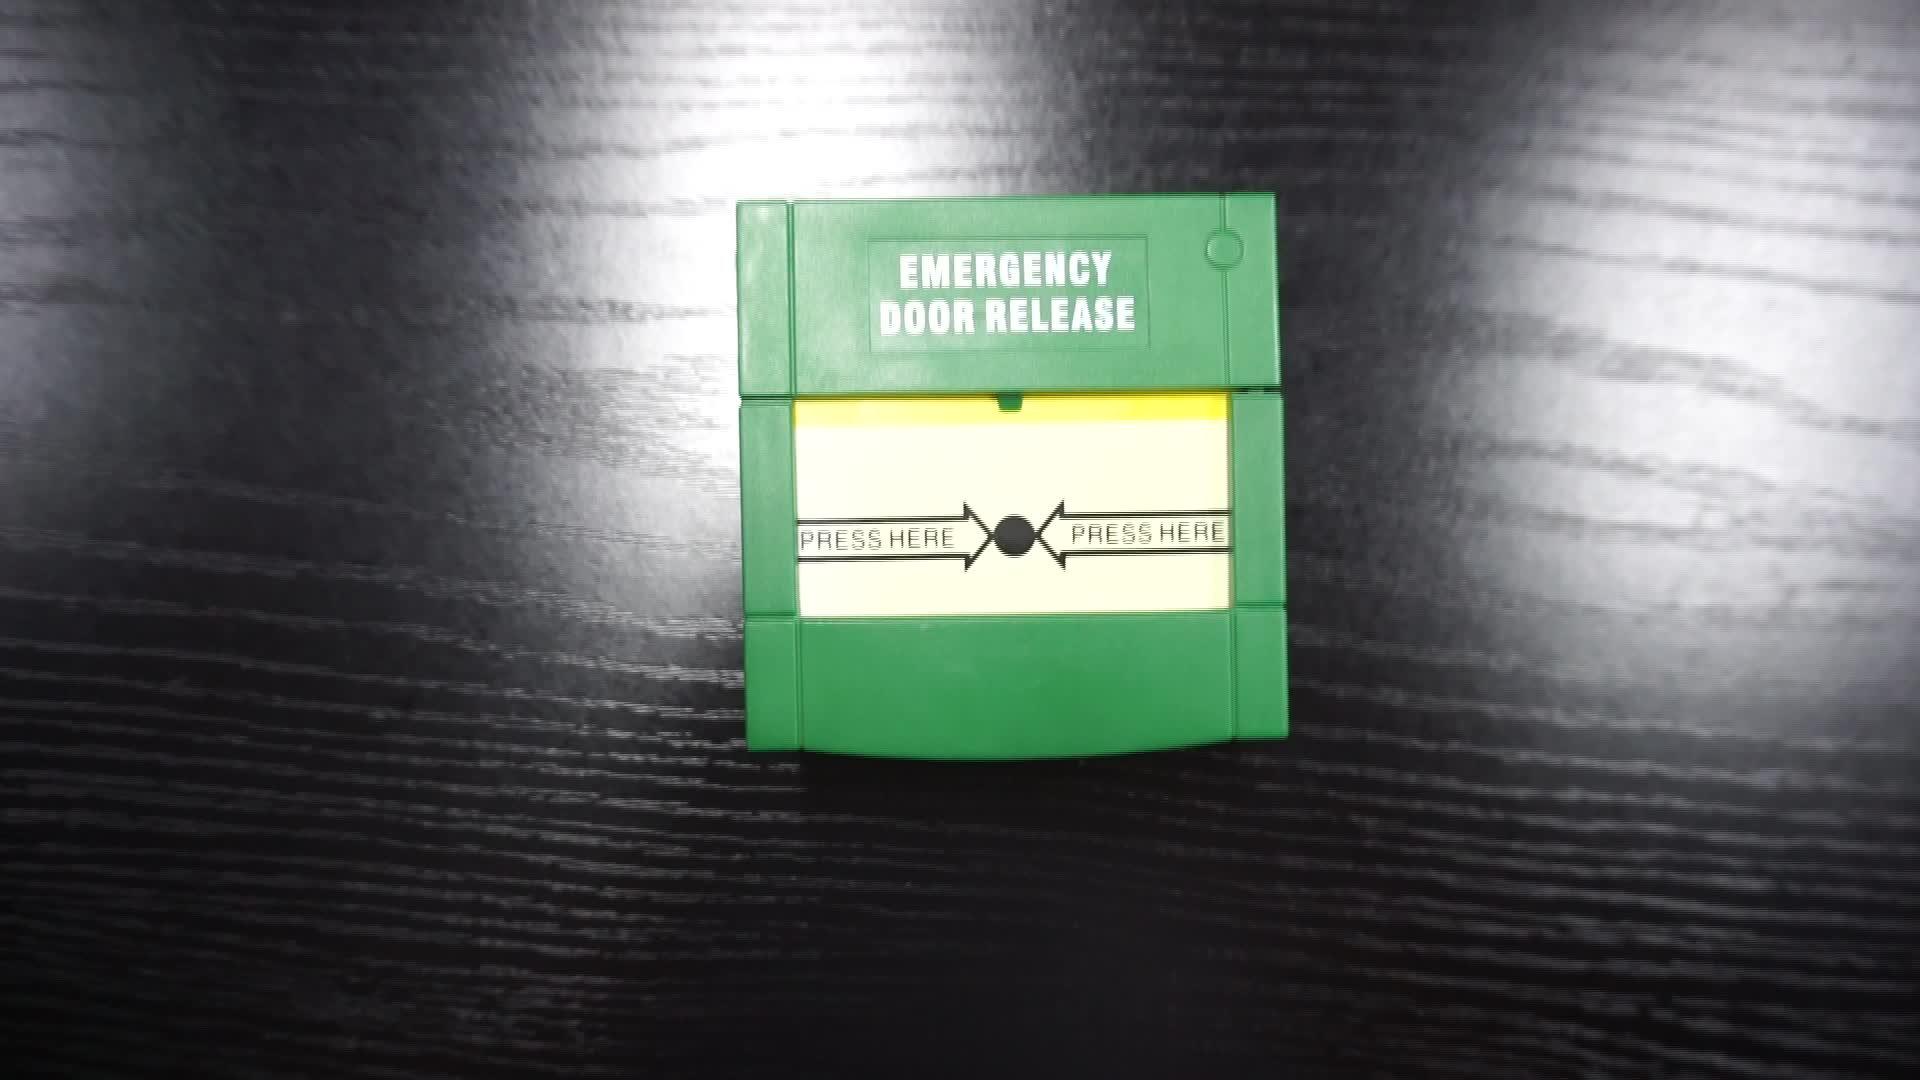 Colorful Fire/Emergency Key reset Call Point Button EB-115